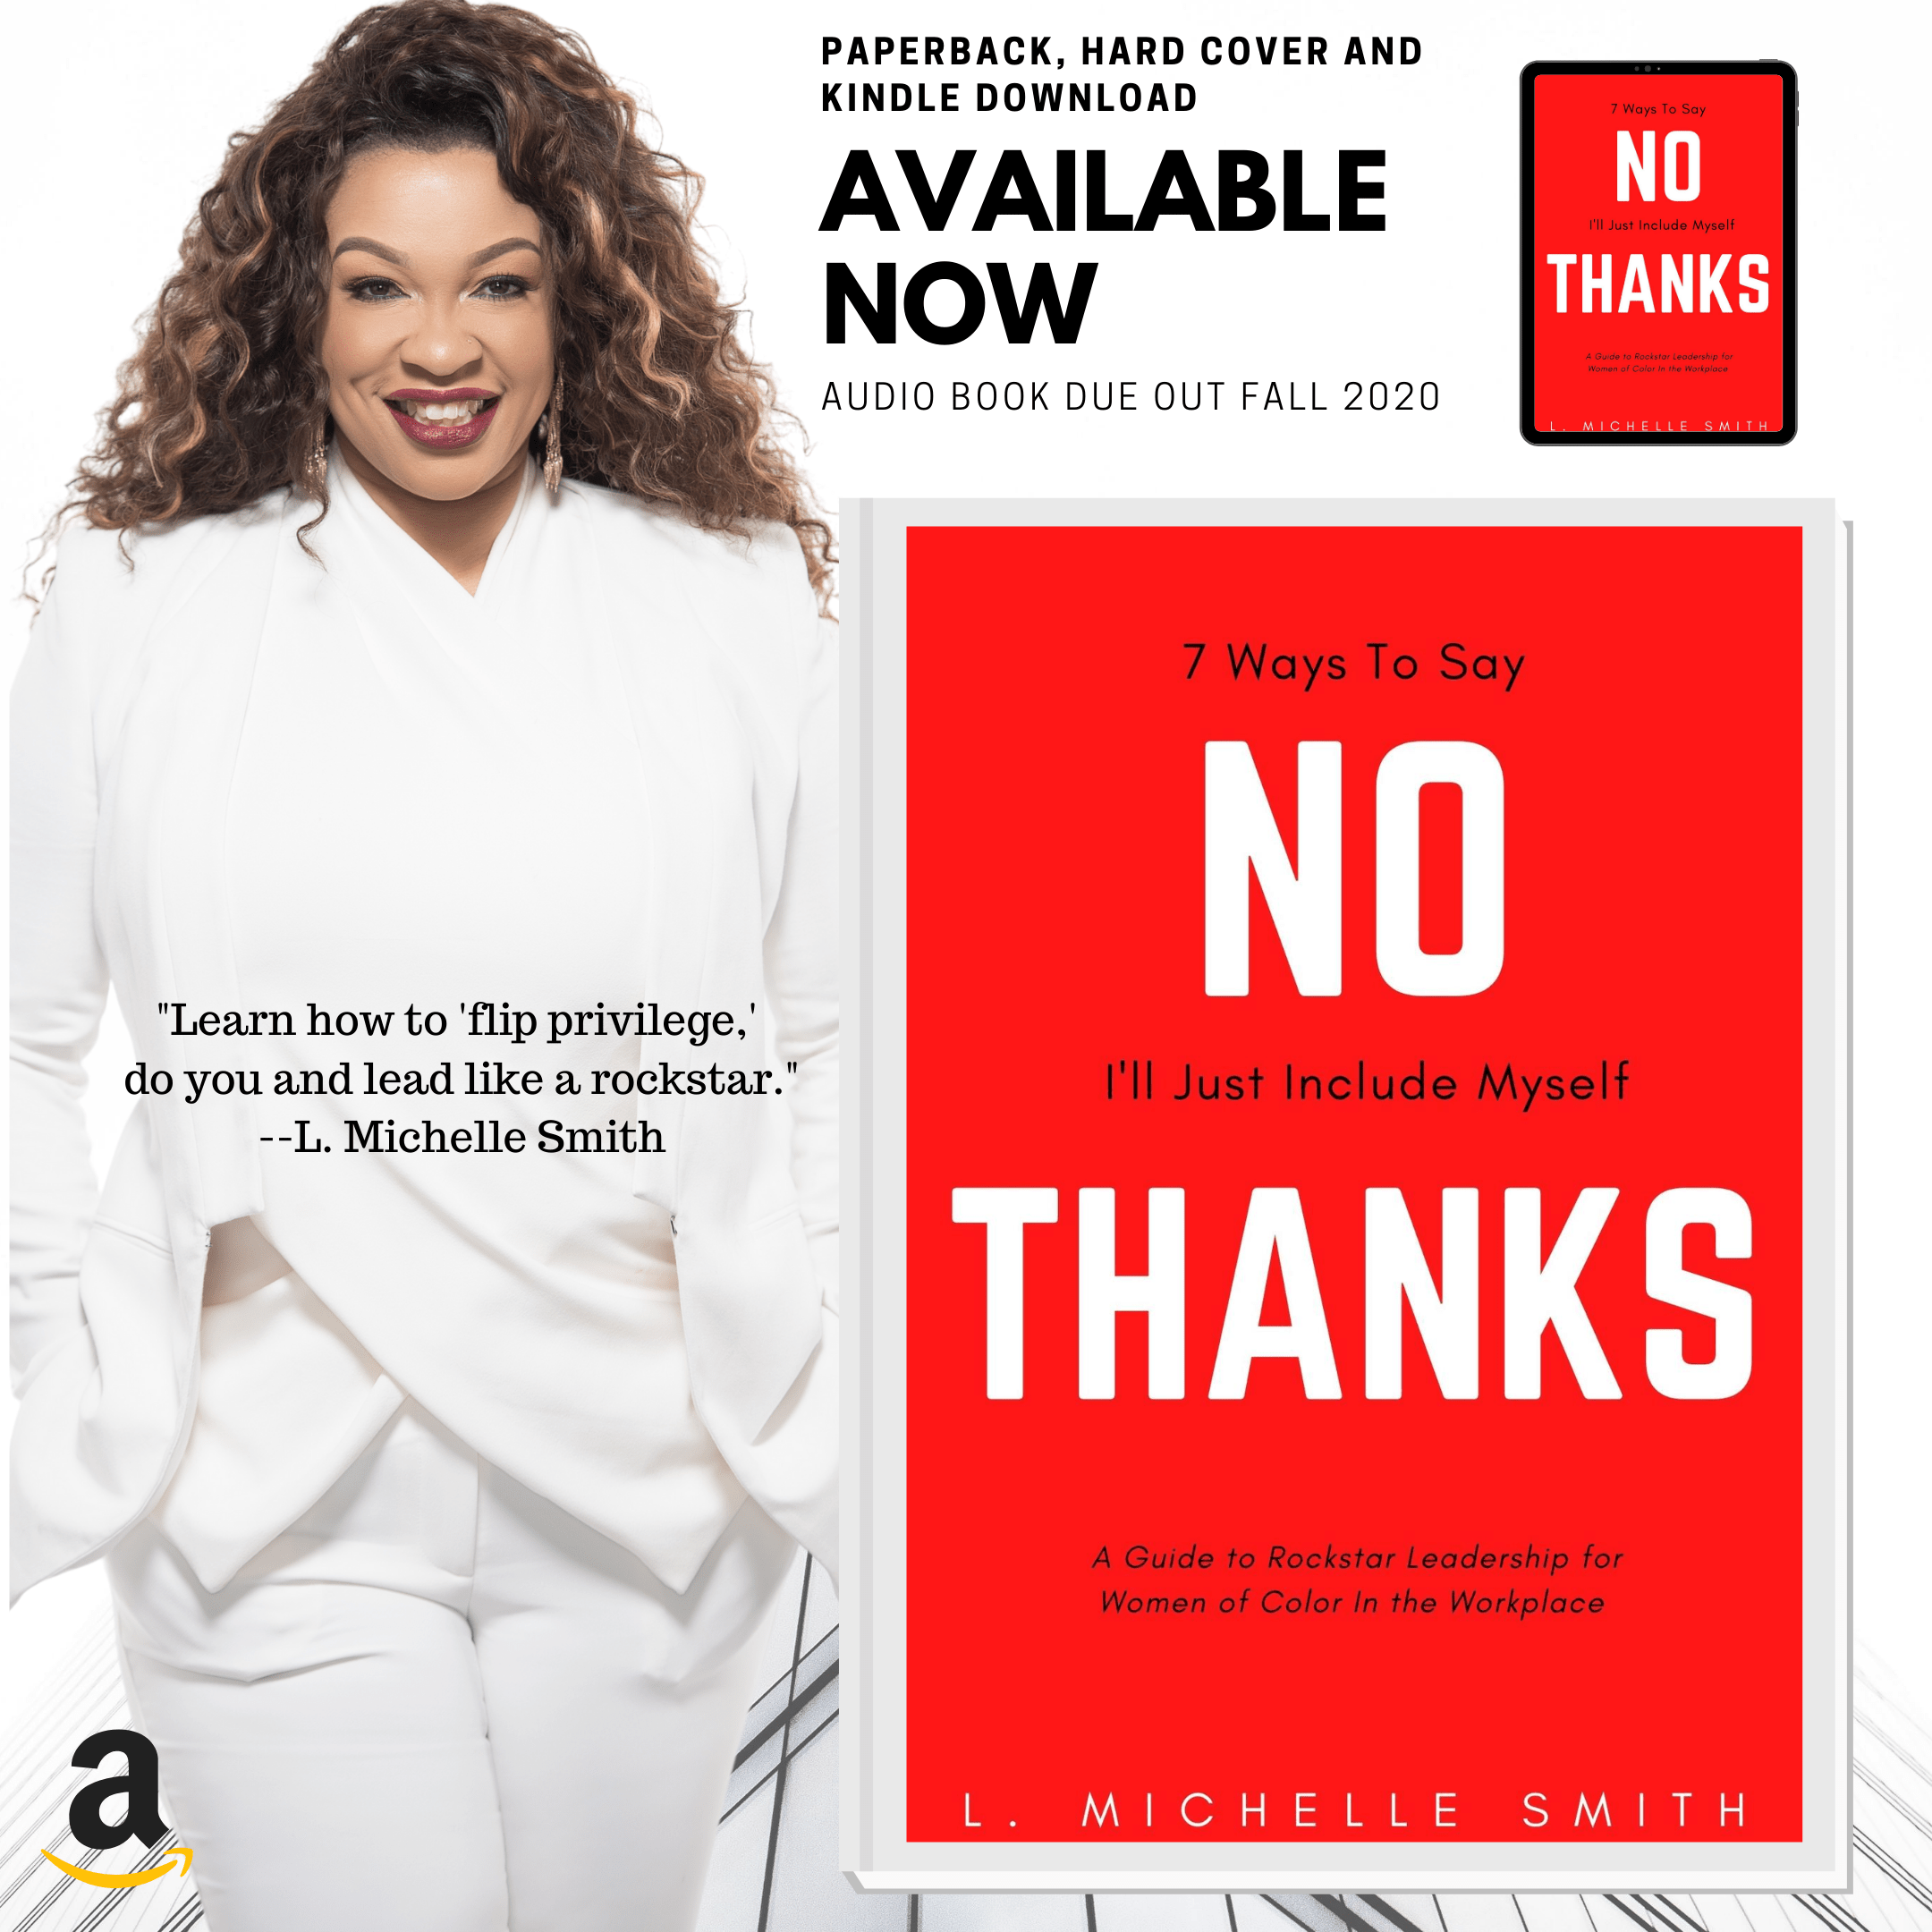 NEW BOOK: No Thanks, 7 Ways to Say I'll Just Include Myself